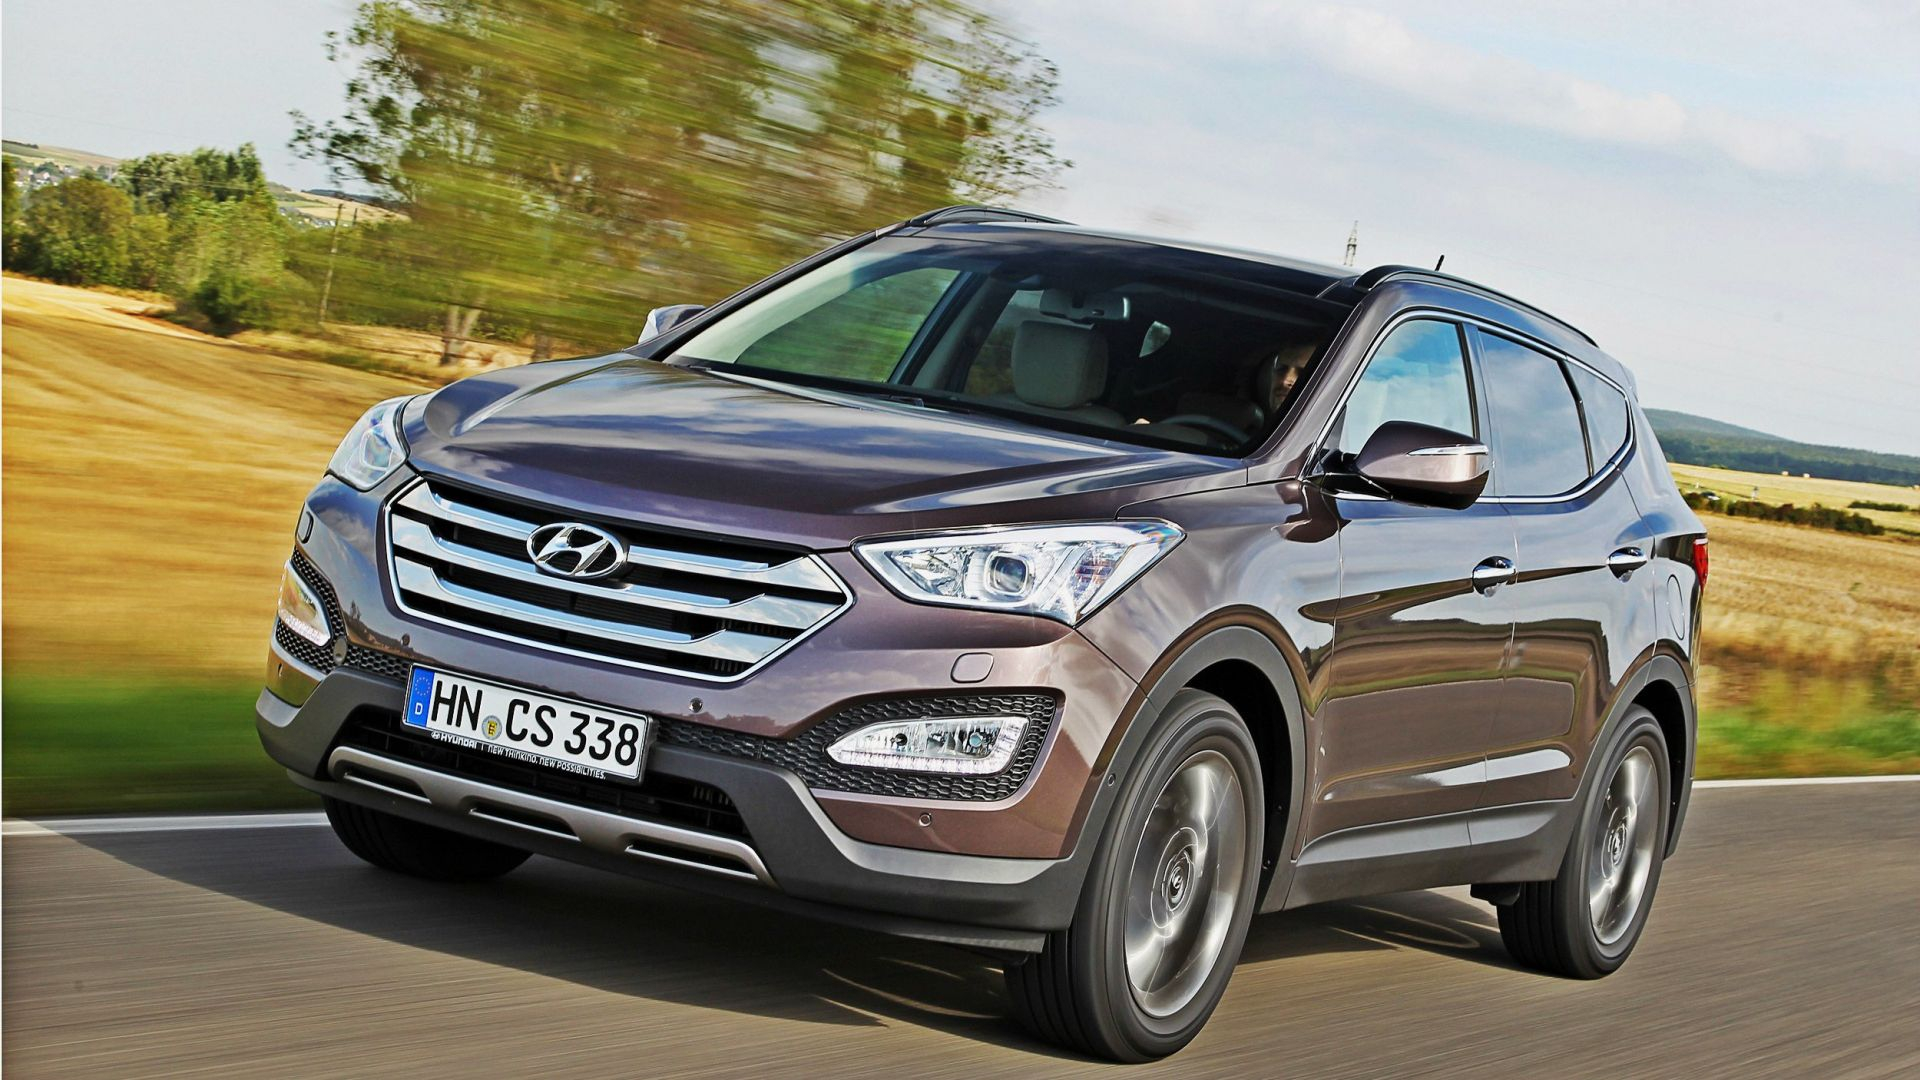 test drive hyundai santa fe 2 2 crdi 4wd style motorbox. Black Bedroom Furniture Sets. Home Design Ideas